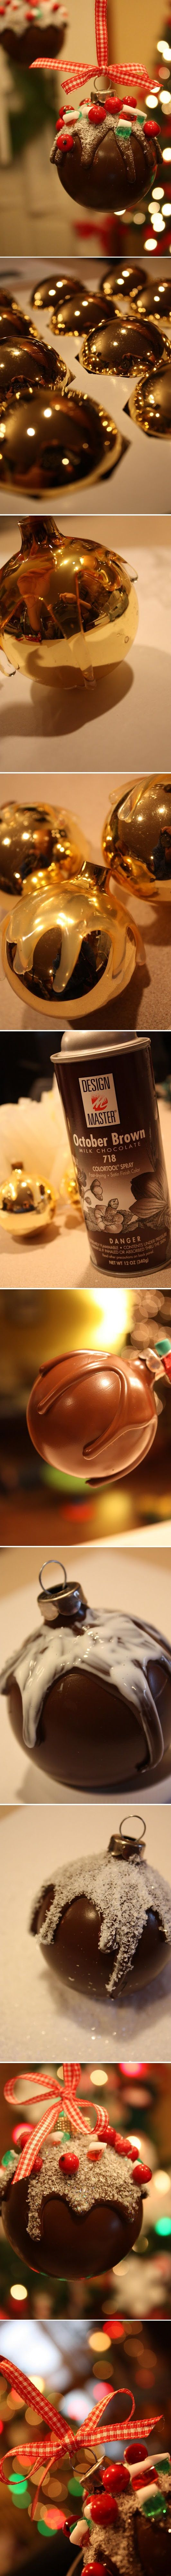 Chocolate Candy Ornament, no link,